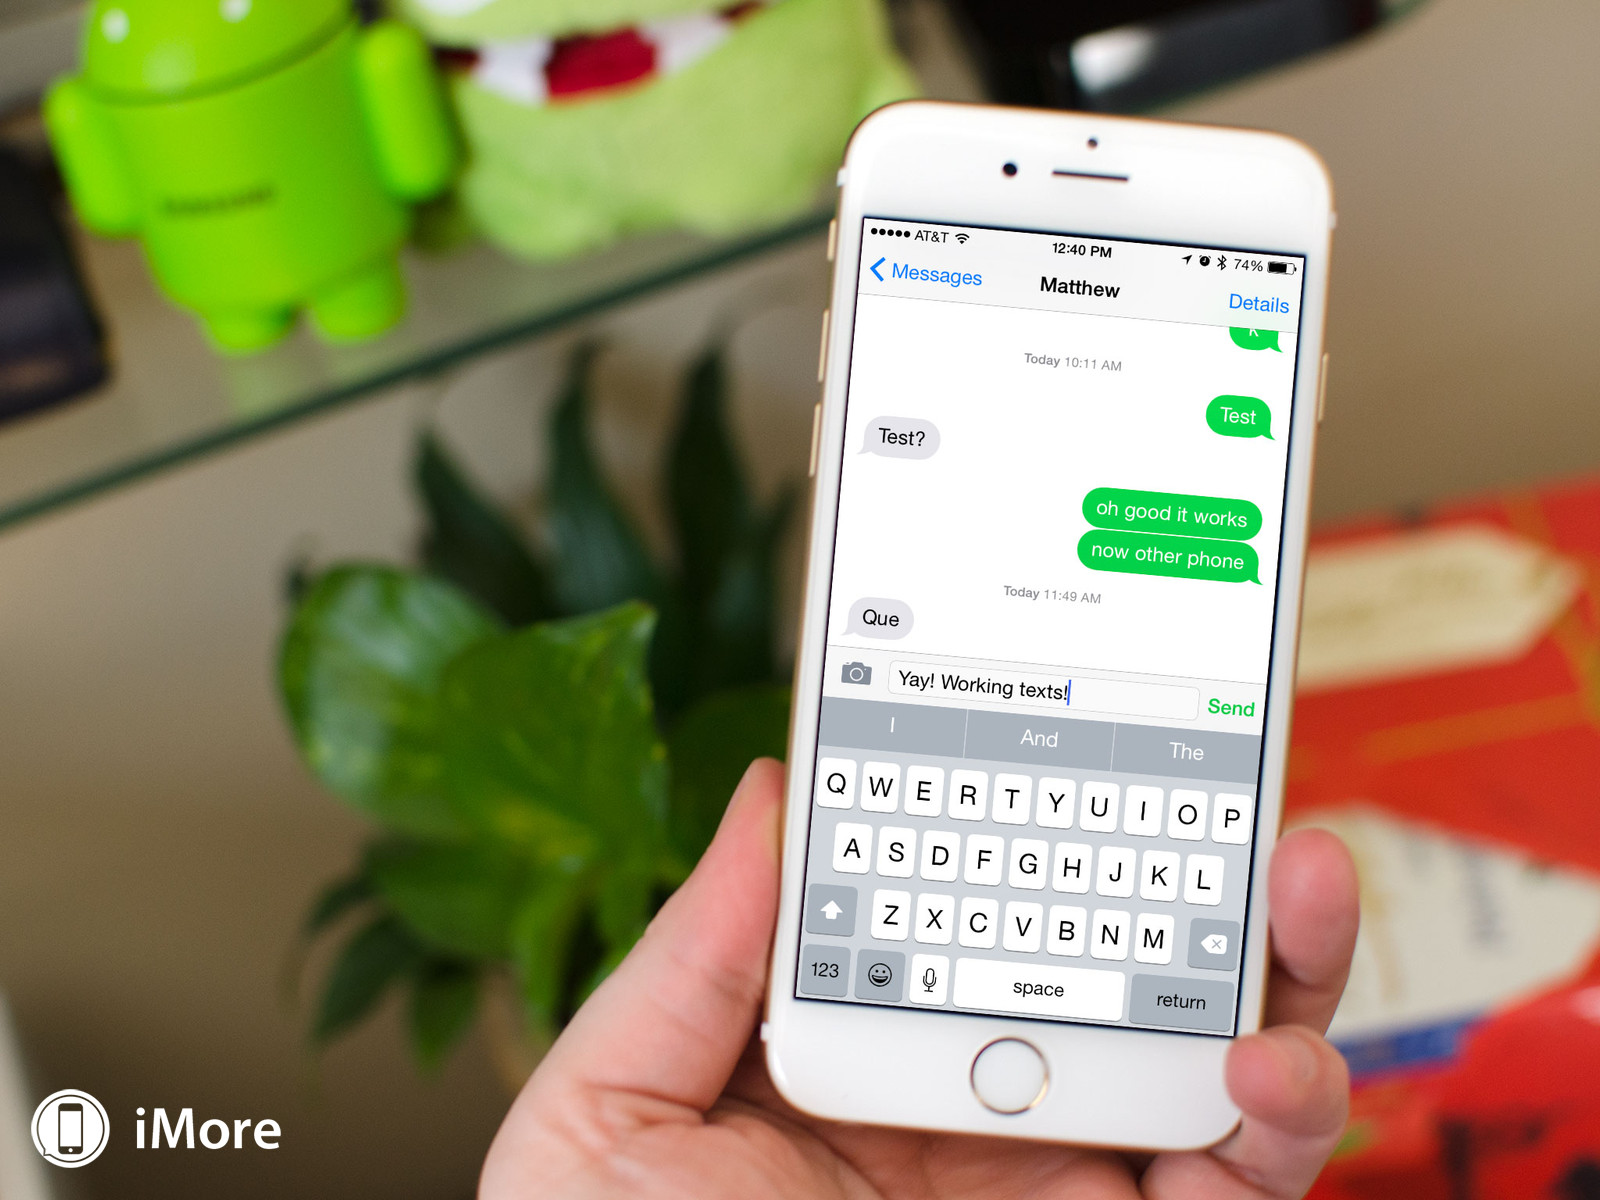 How to fix issues with regular texts on iPhone 6 and 6 Plus